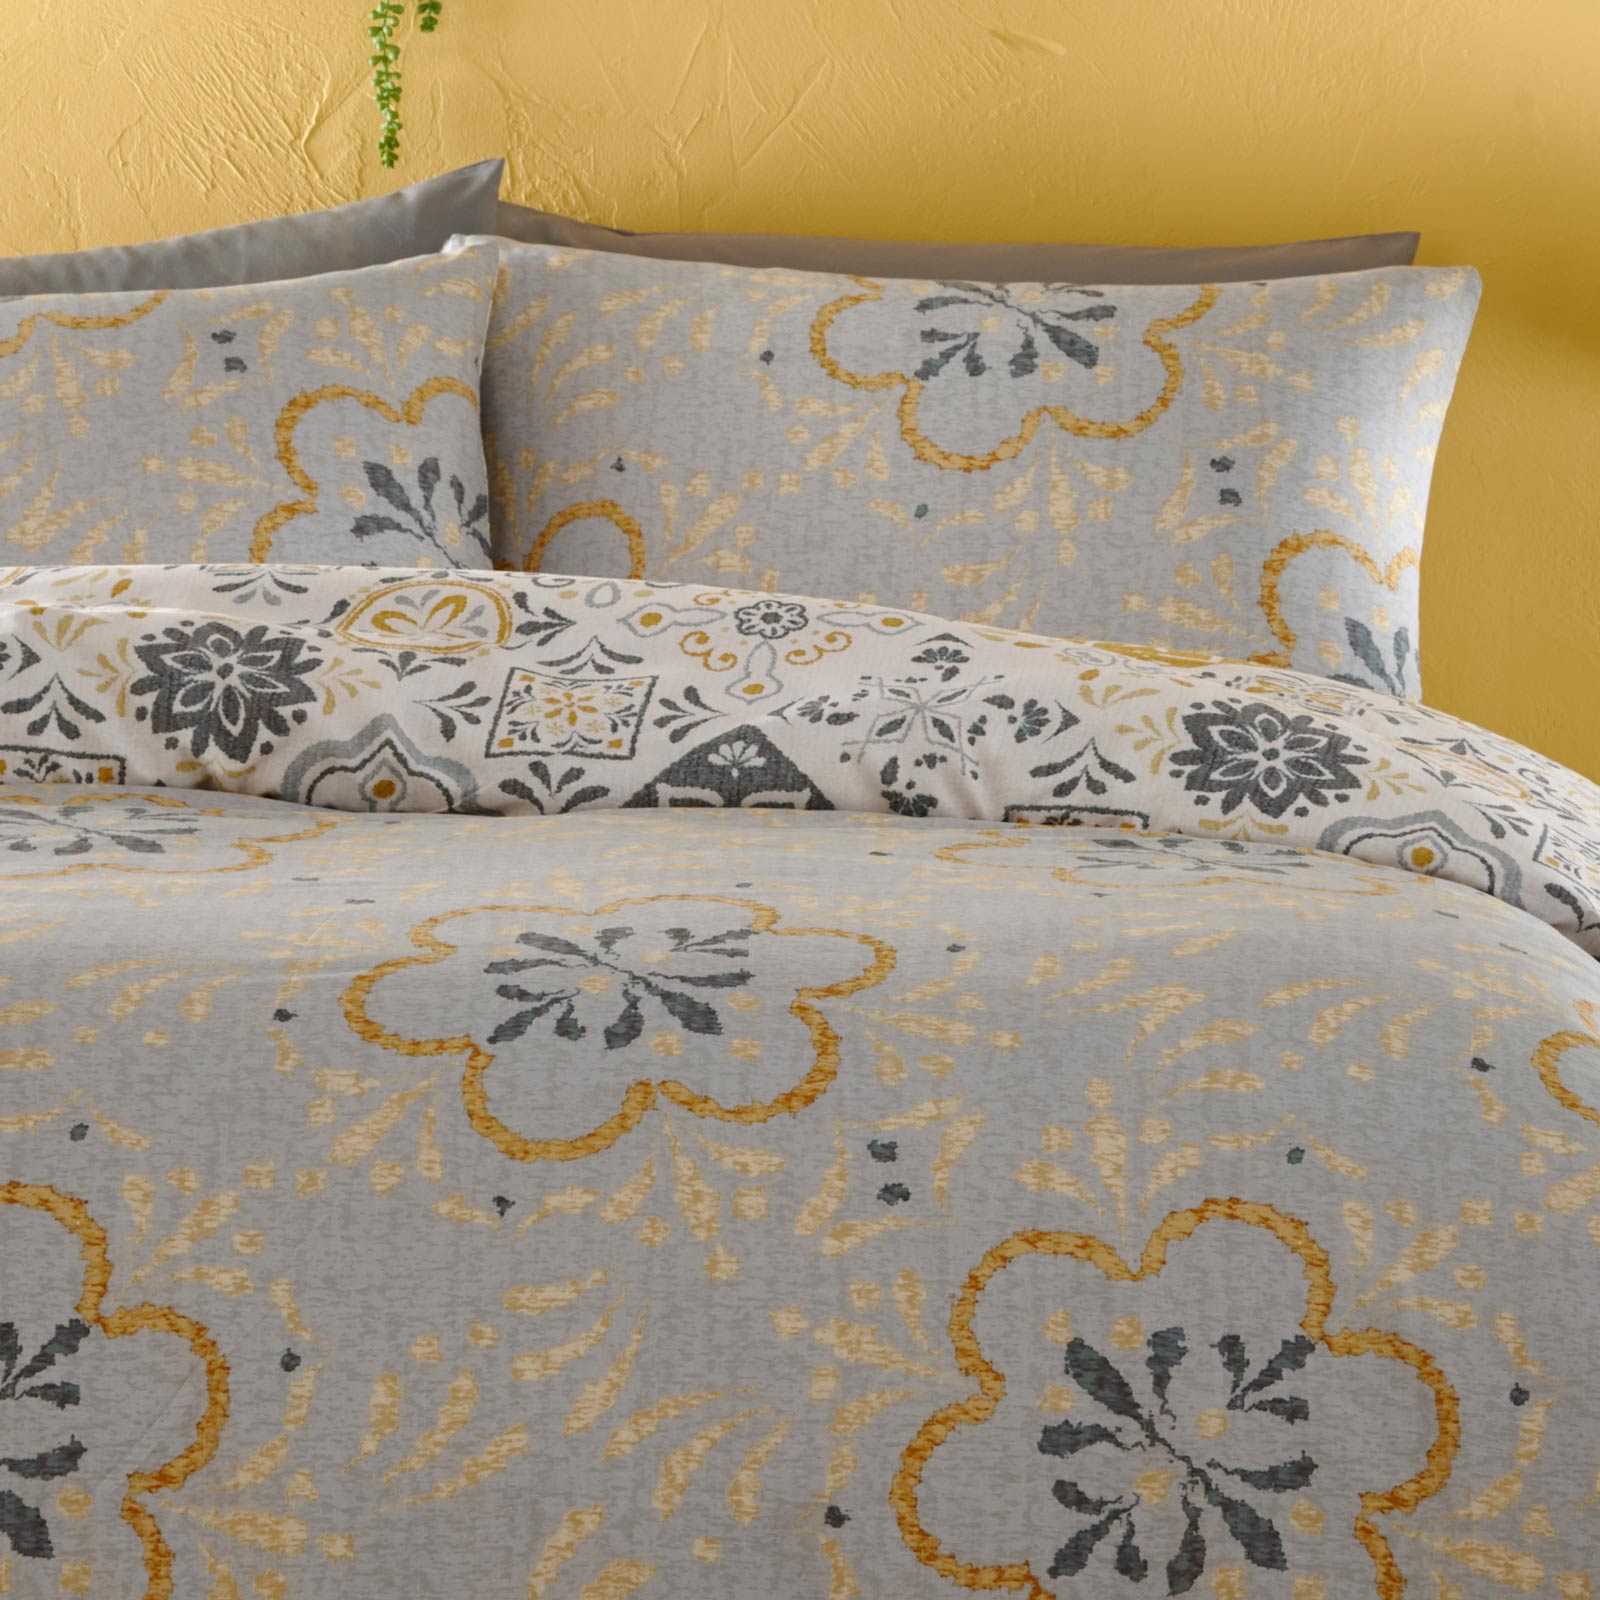 Morocco Tile Print Reversible Ochre Duvet Cover Set -  - Ideal Textiles